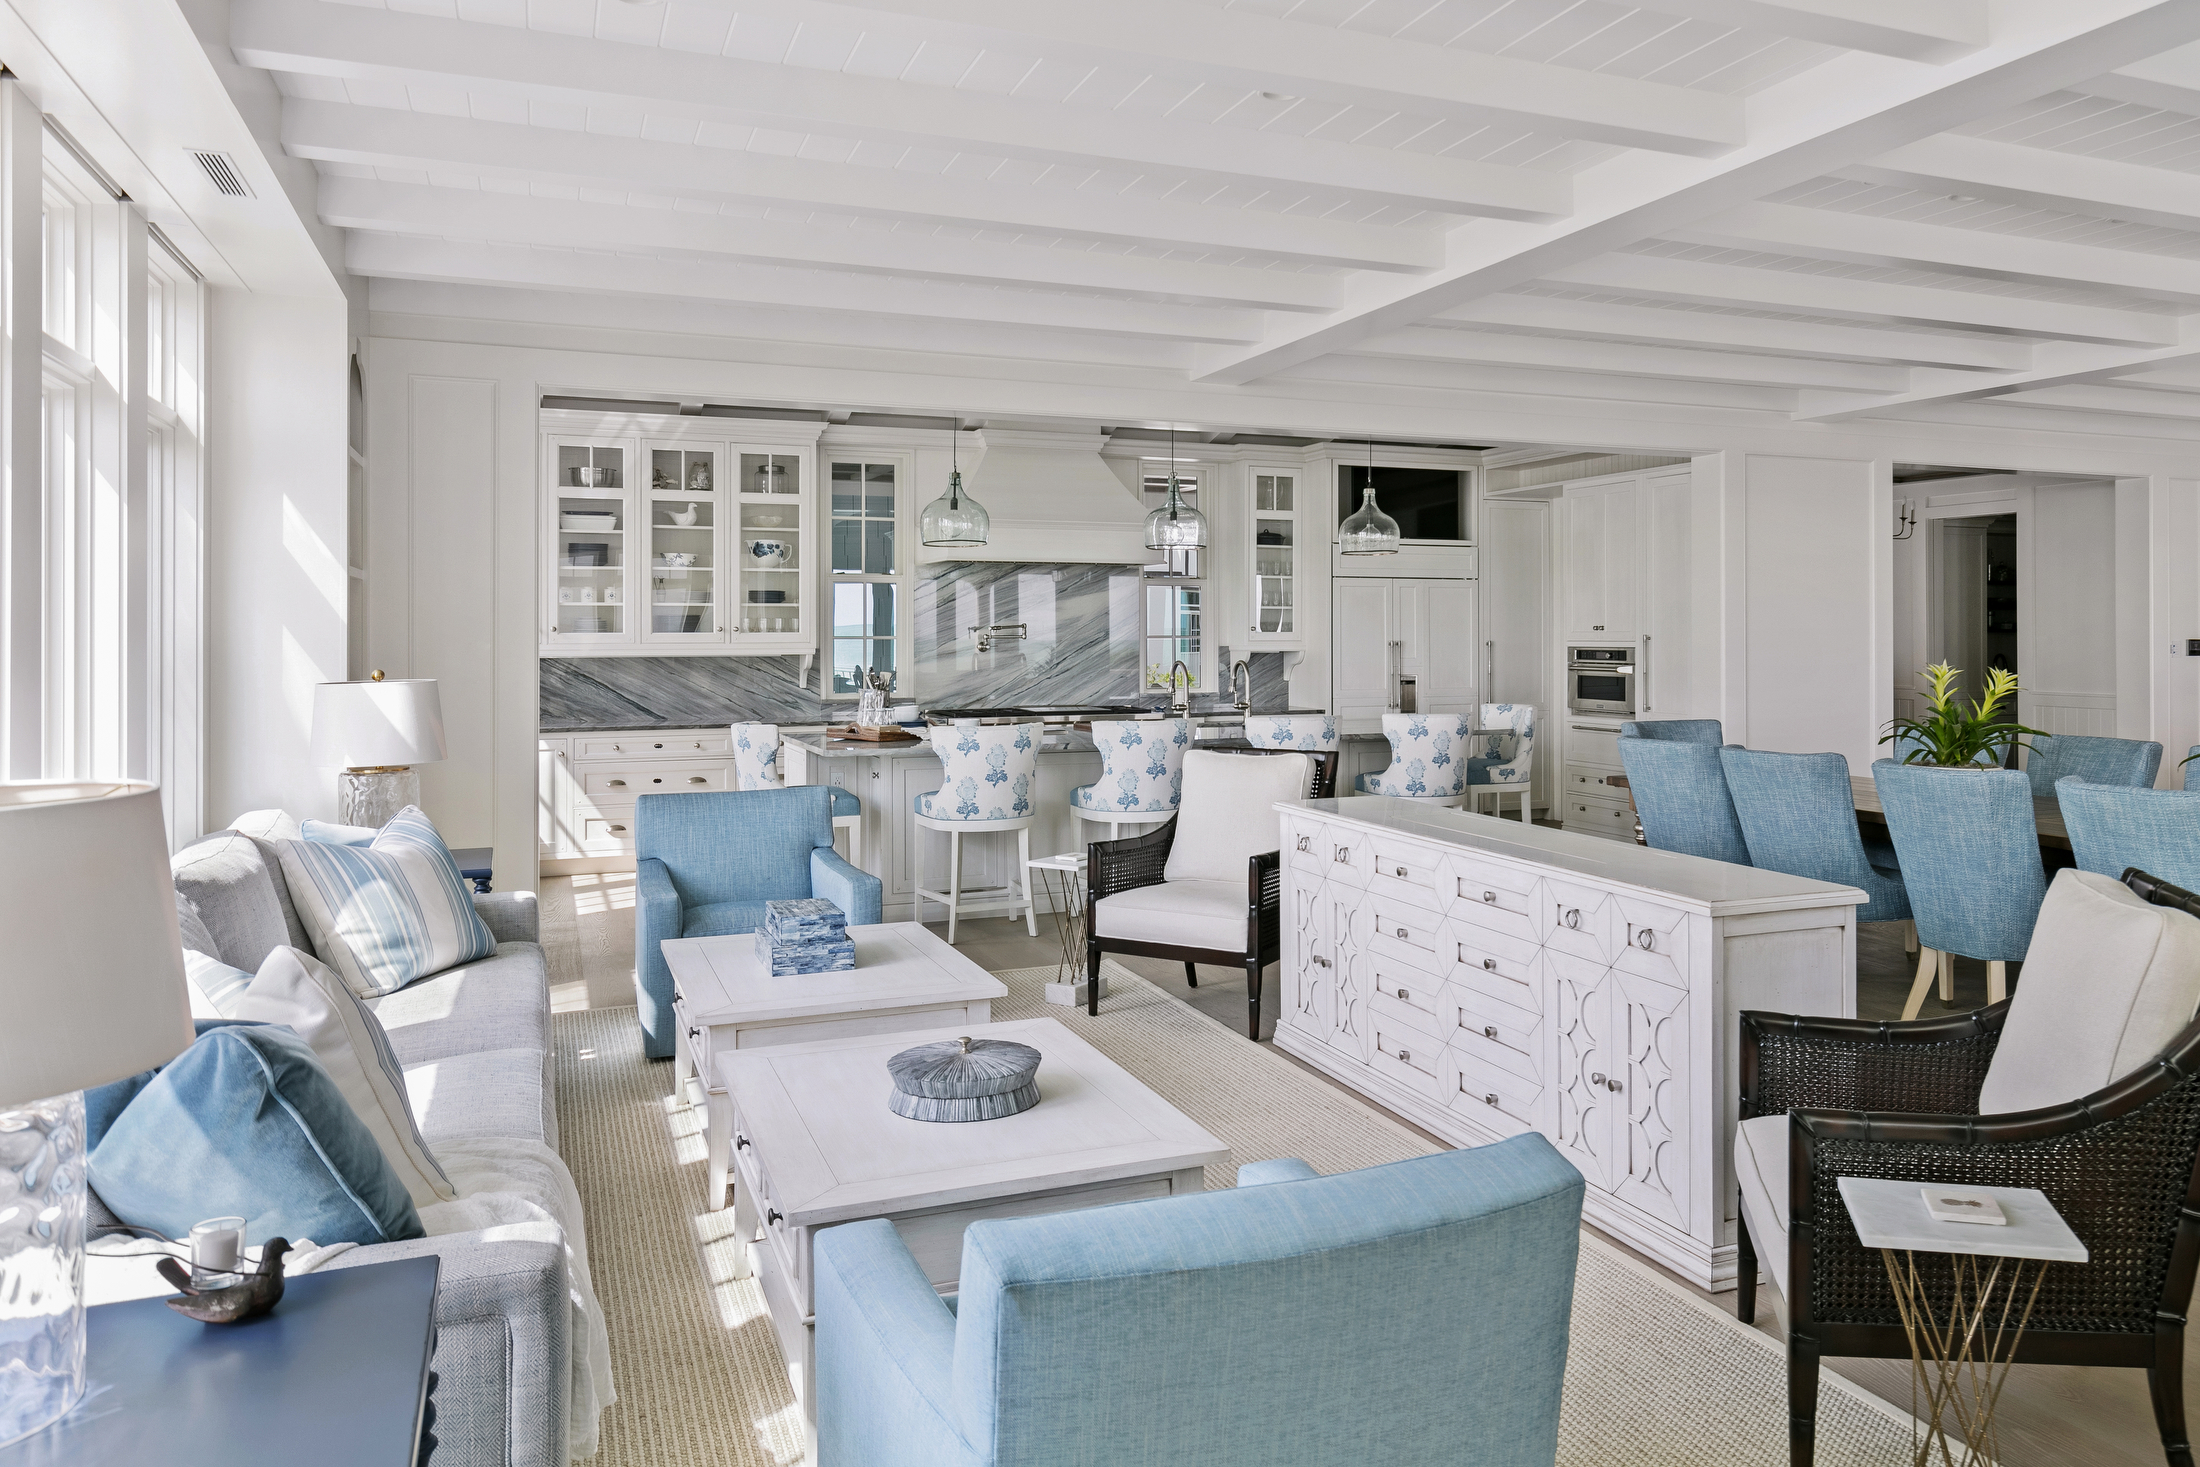 Great room designed in pale blue, white and gray